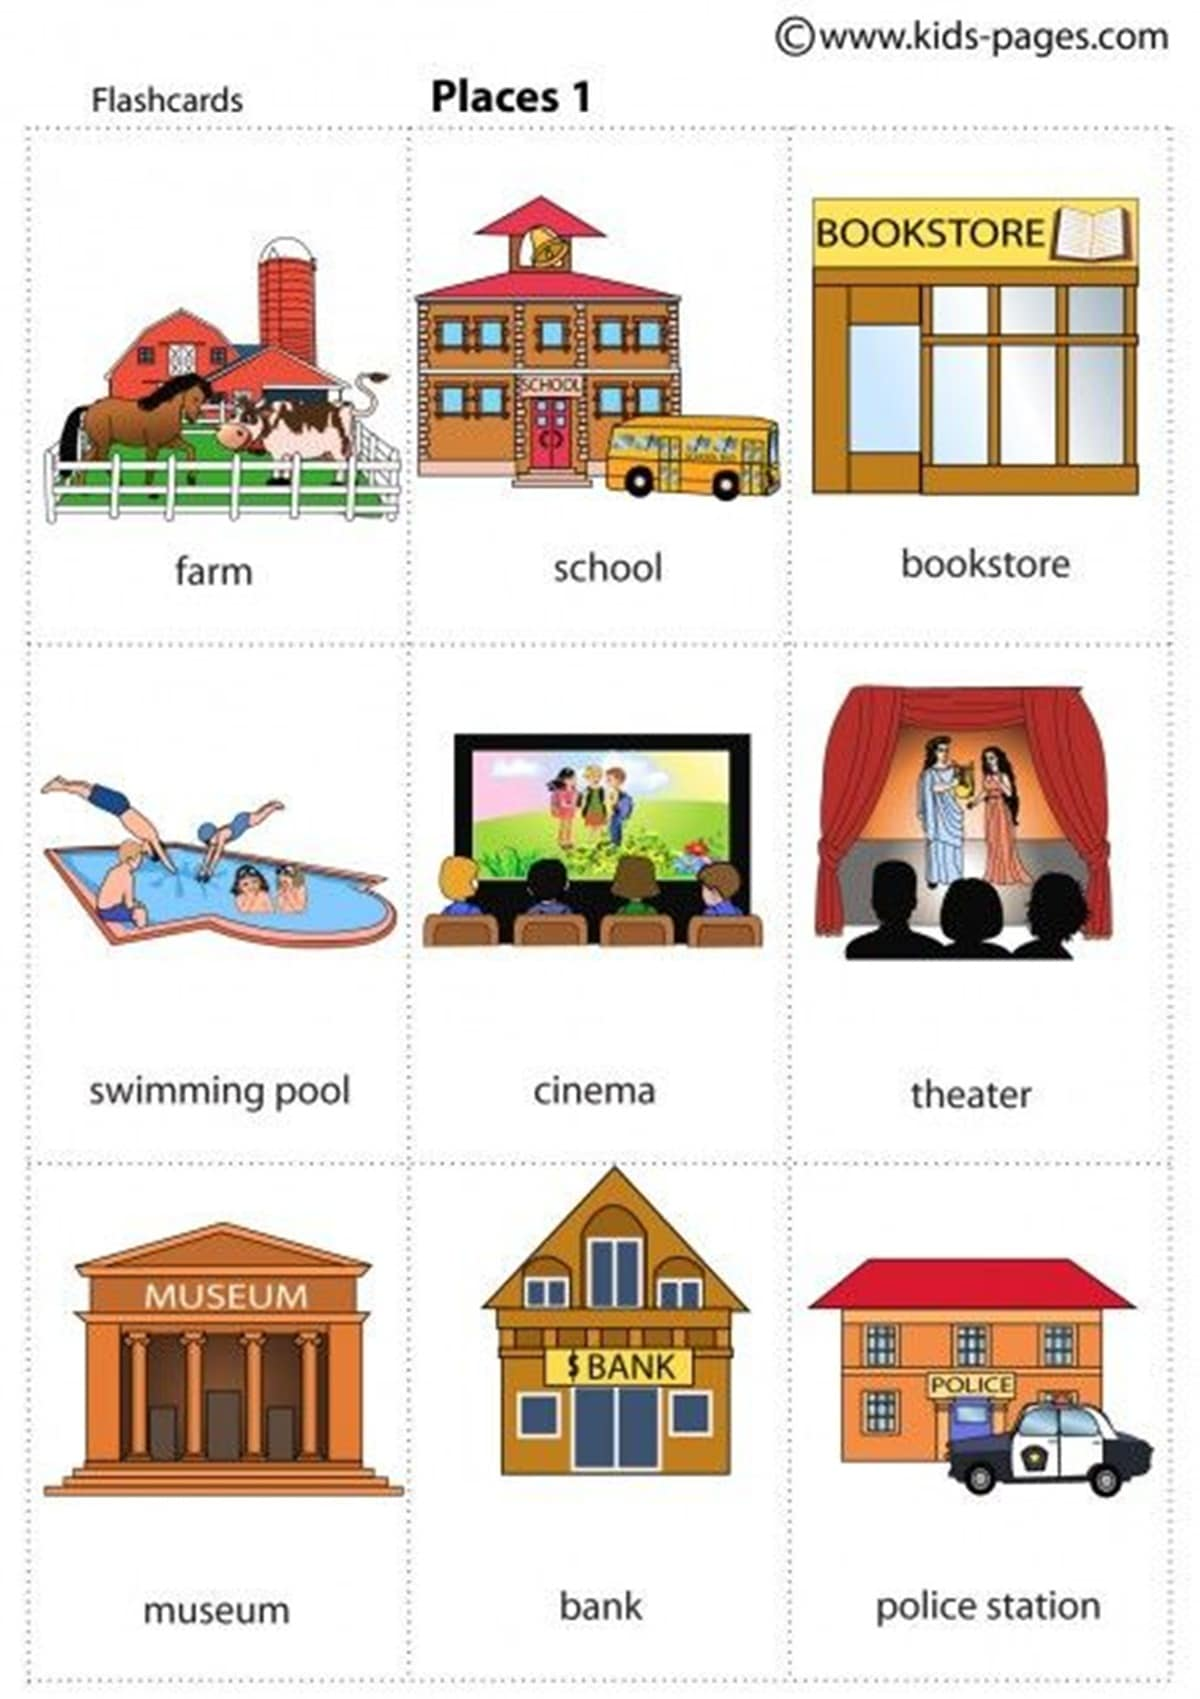 Learn English Vocabulary: Places in the City 1